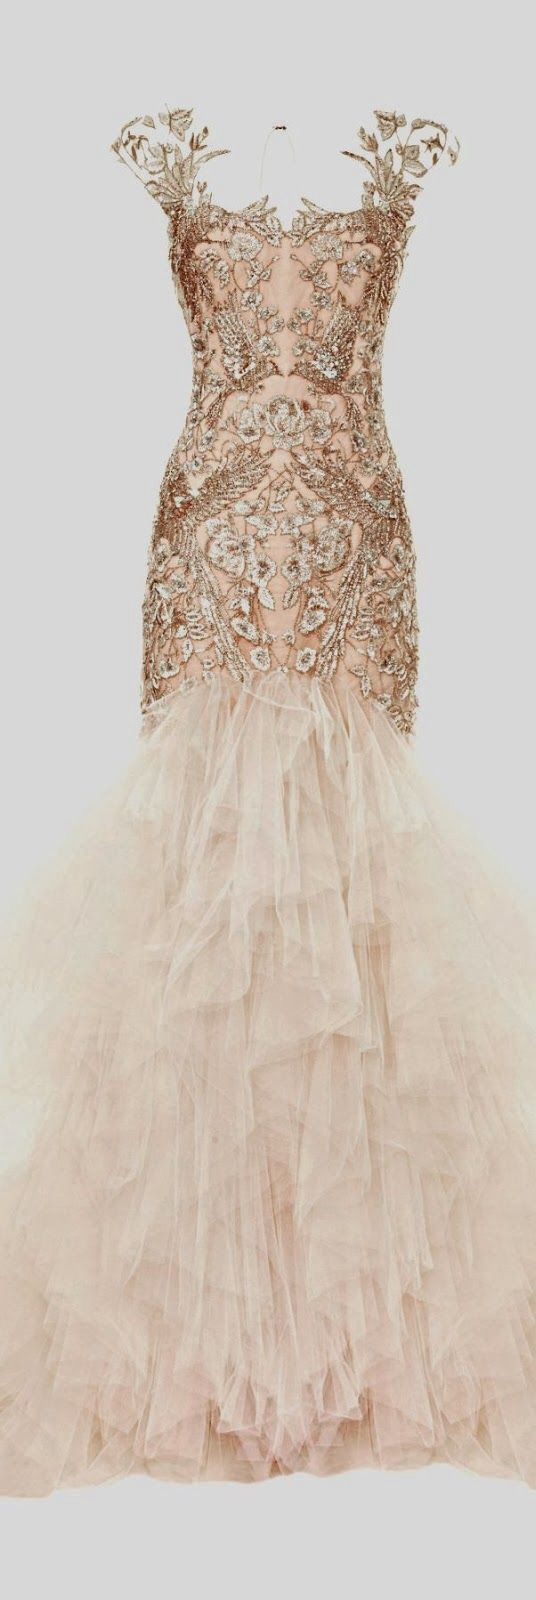 Alexander mcqueen 2016 wedding dresses pinterest for When to buy wedding dress